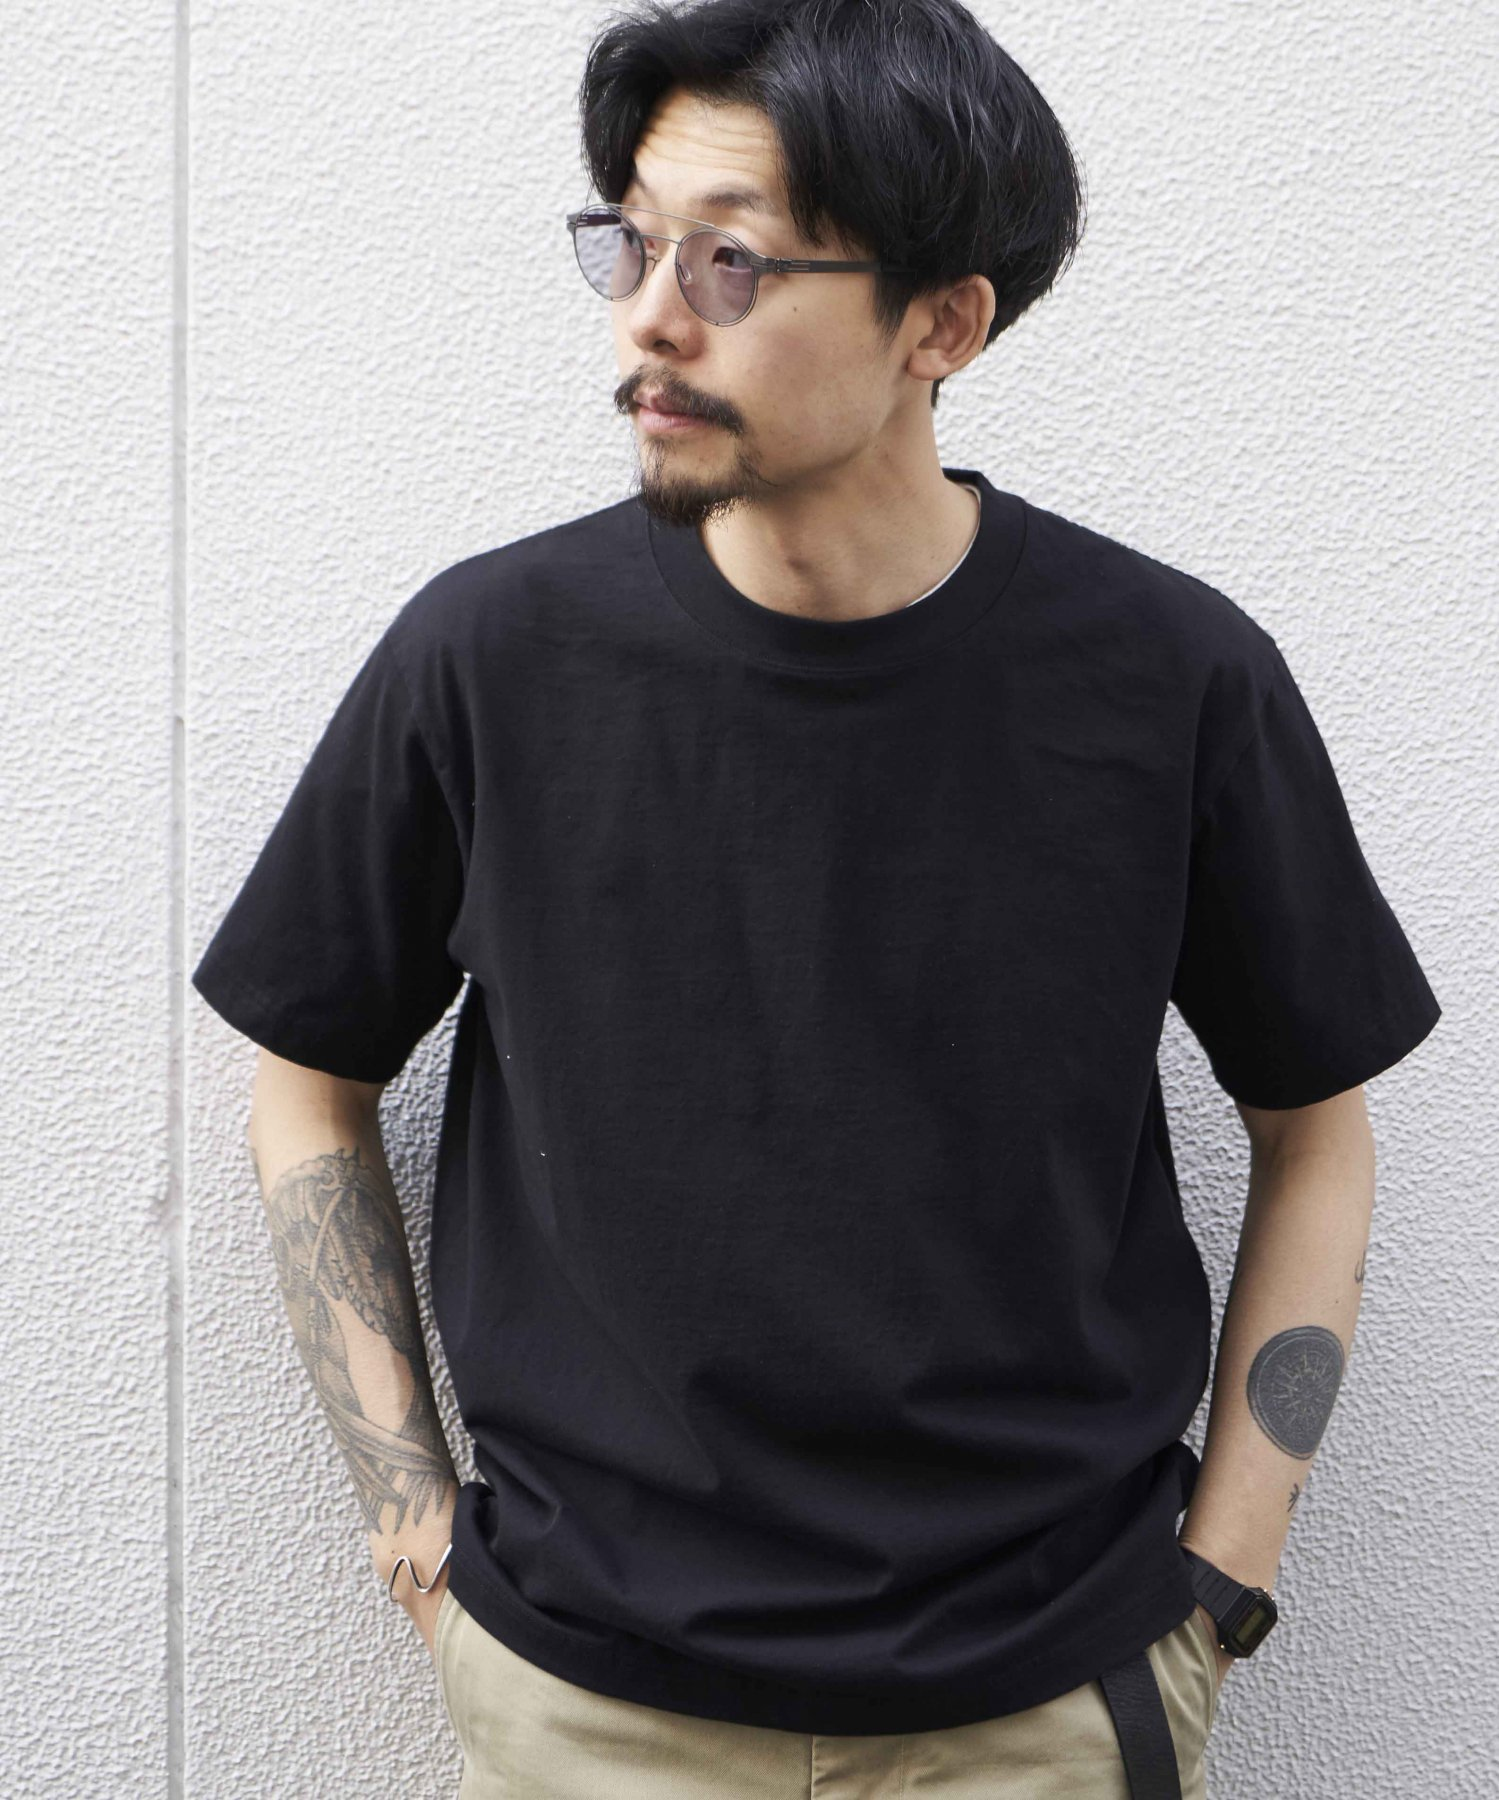 <img class='new_mark_img1' src='https://img.shop-pro.jp/img/new/icons15.gif' style='border:none;display:inline;margin:0px;padding:0px;width:auto;' />【REBIRTH PROJECT】SOUL COTTON T-shirt  BLK